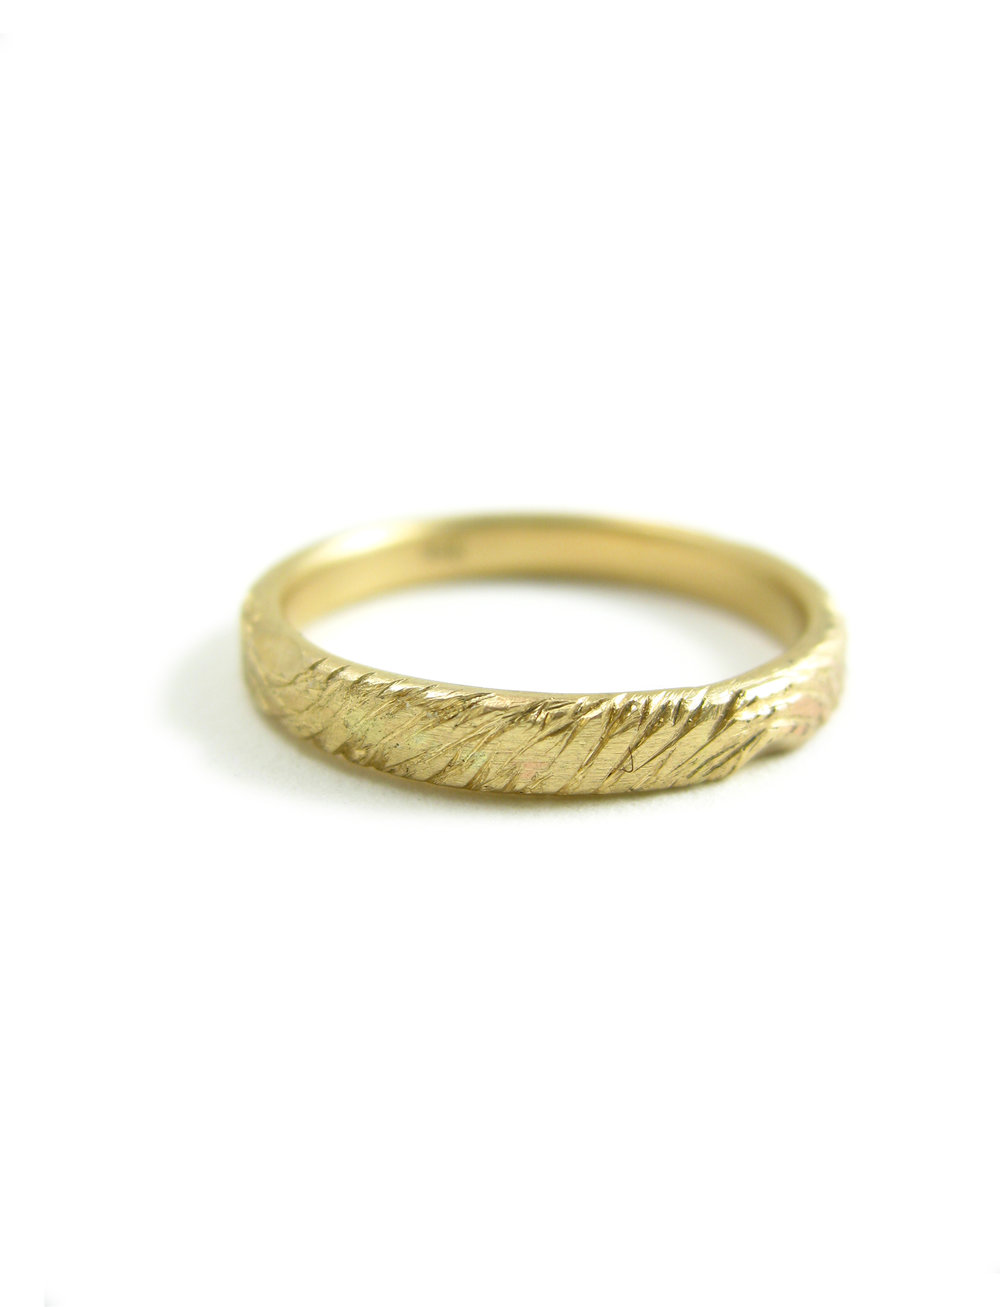 wedding band geometric men and karat solid square for thin hand made media gold simple ring bands women